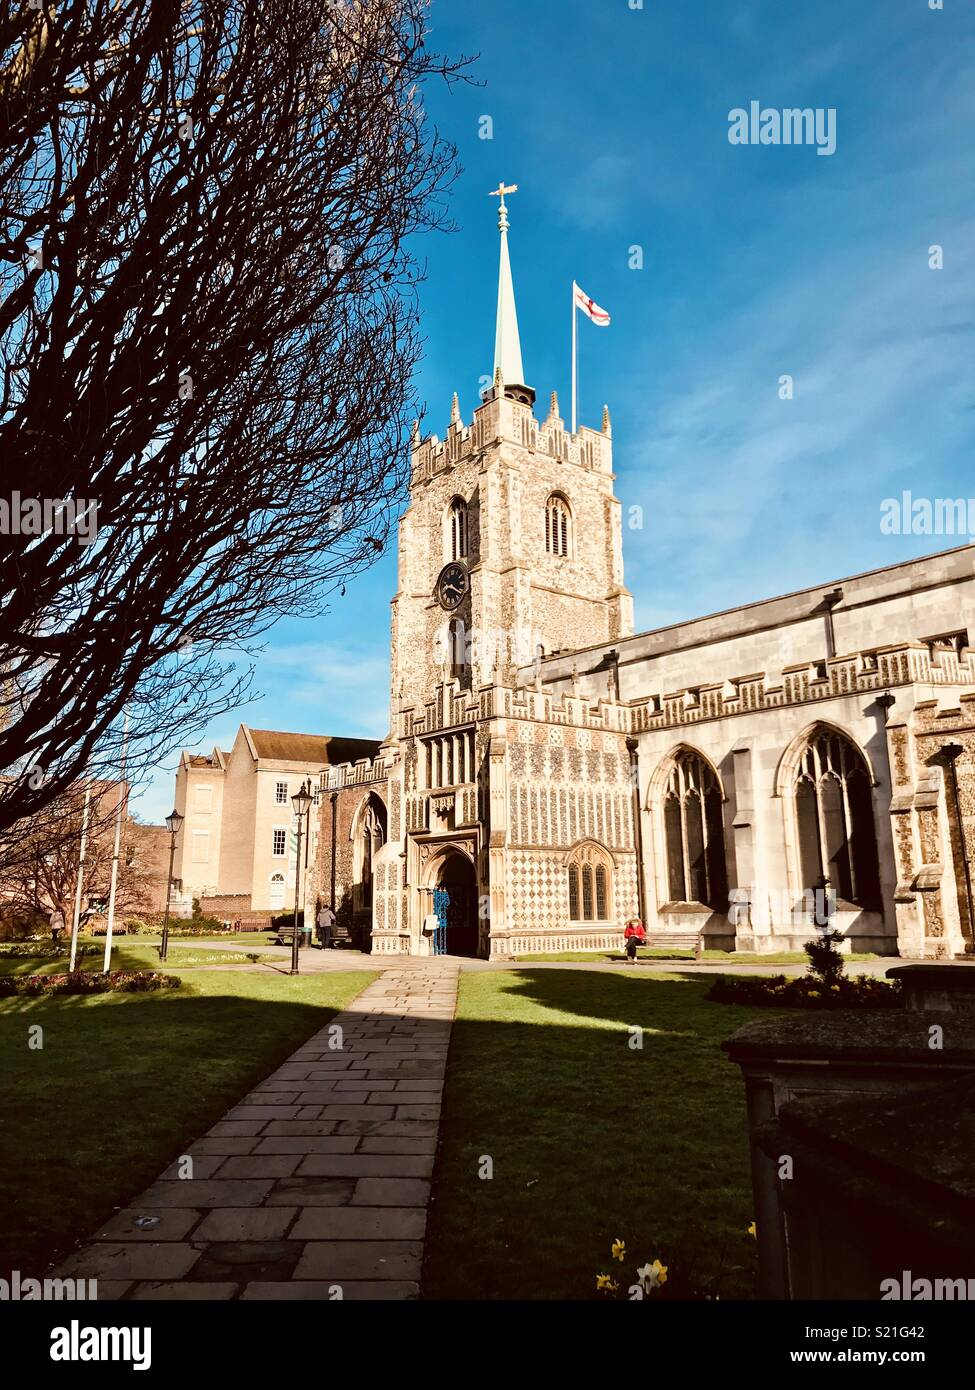 Chelmsford cathedral in the Spring sunshine - Stock Image